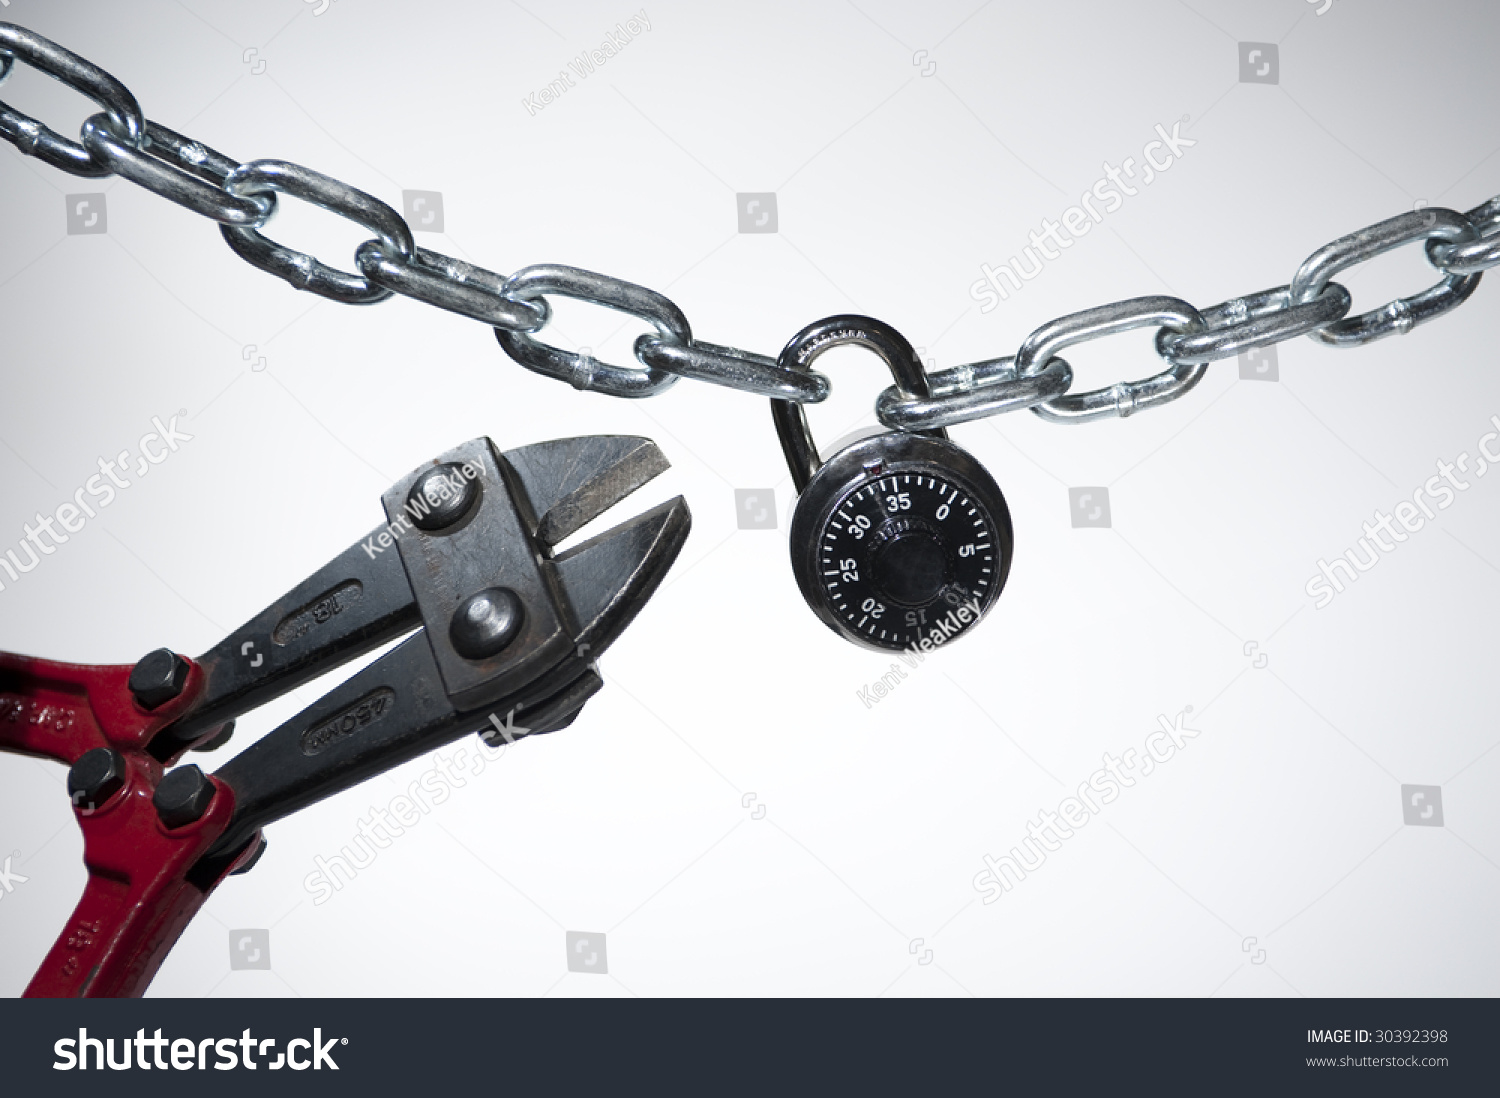 Cutting open chain lock on white background stock photo 30392398 shutterstock - How to open chain lock ...